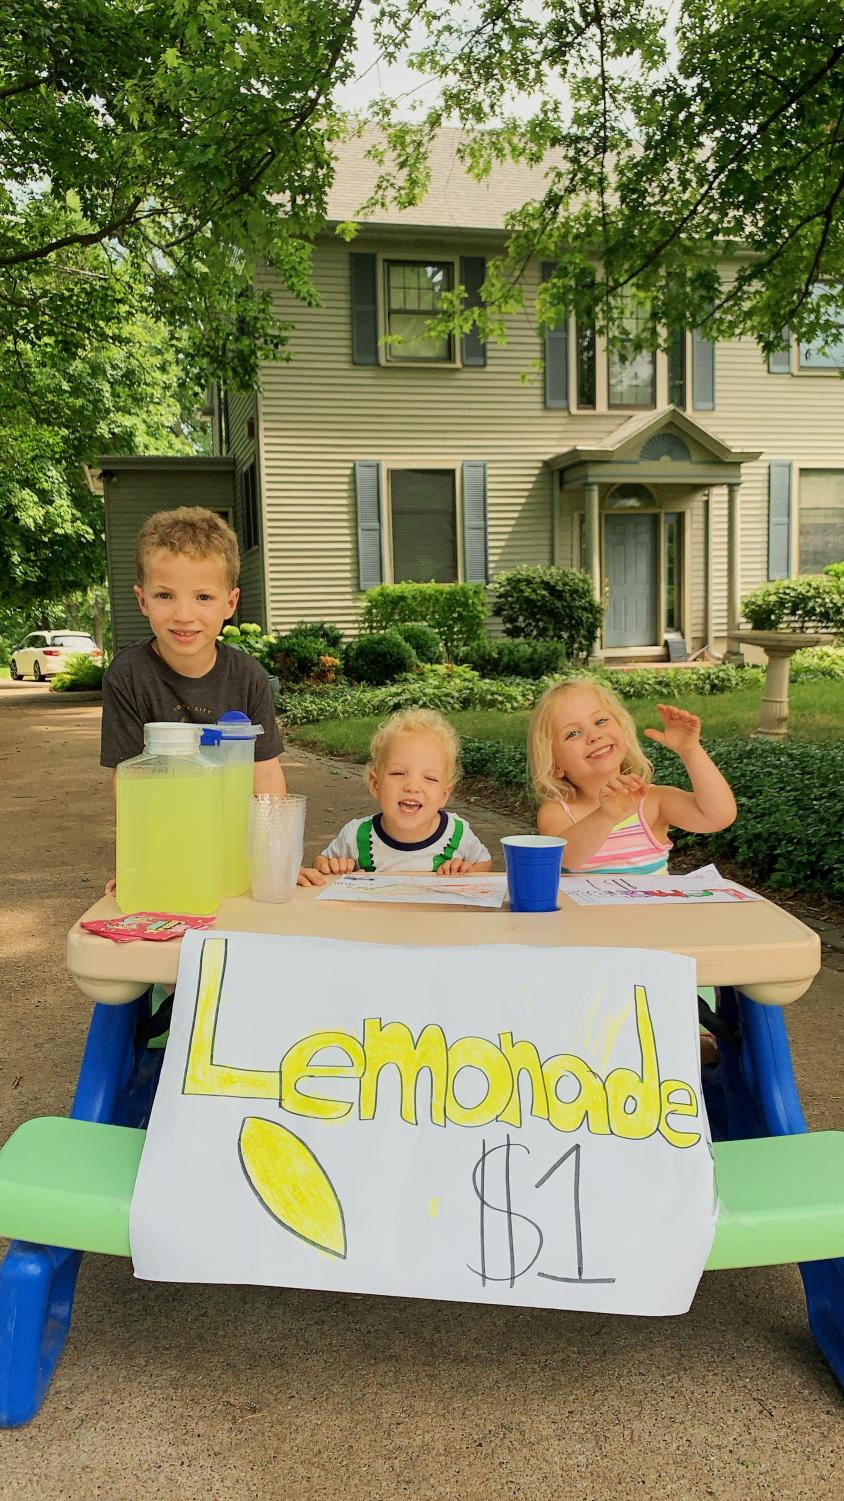 One of Ashley Steele's, '20, more successful babysitting experiences was a lemonade stand with her cousins.